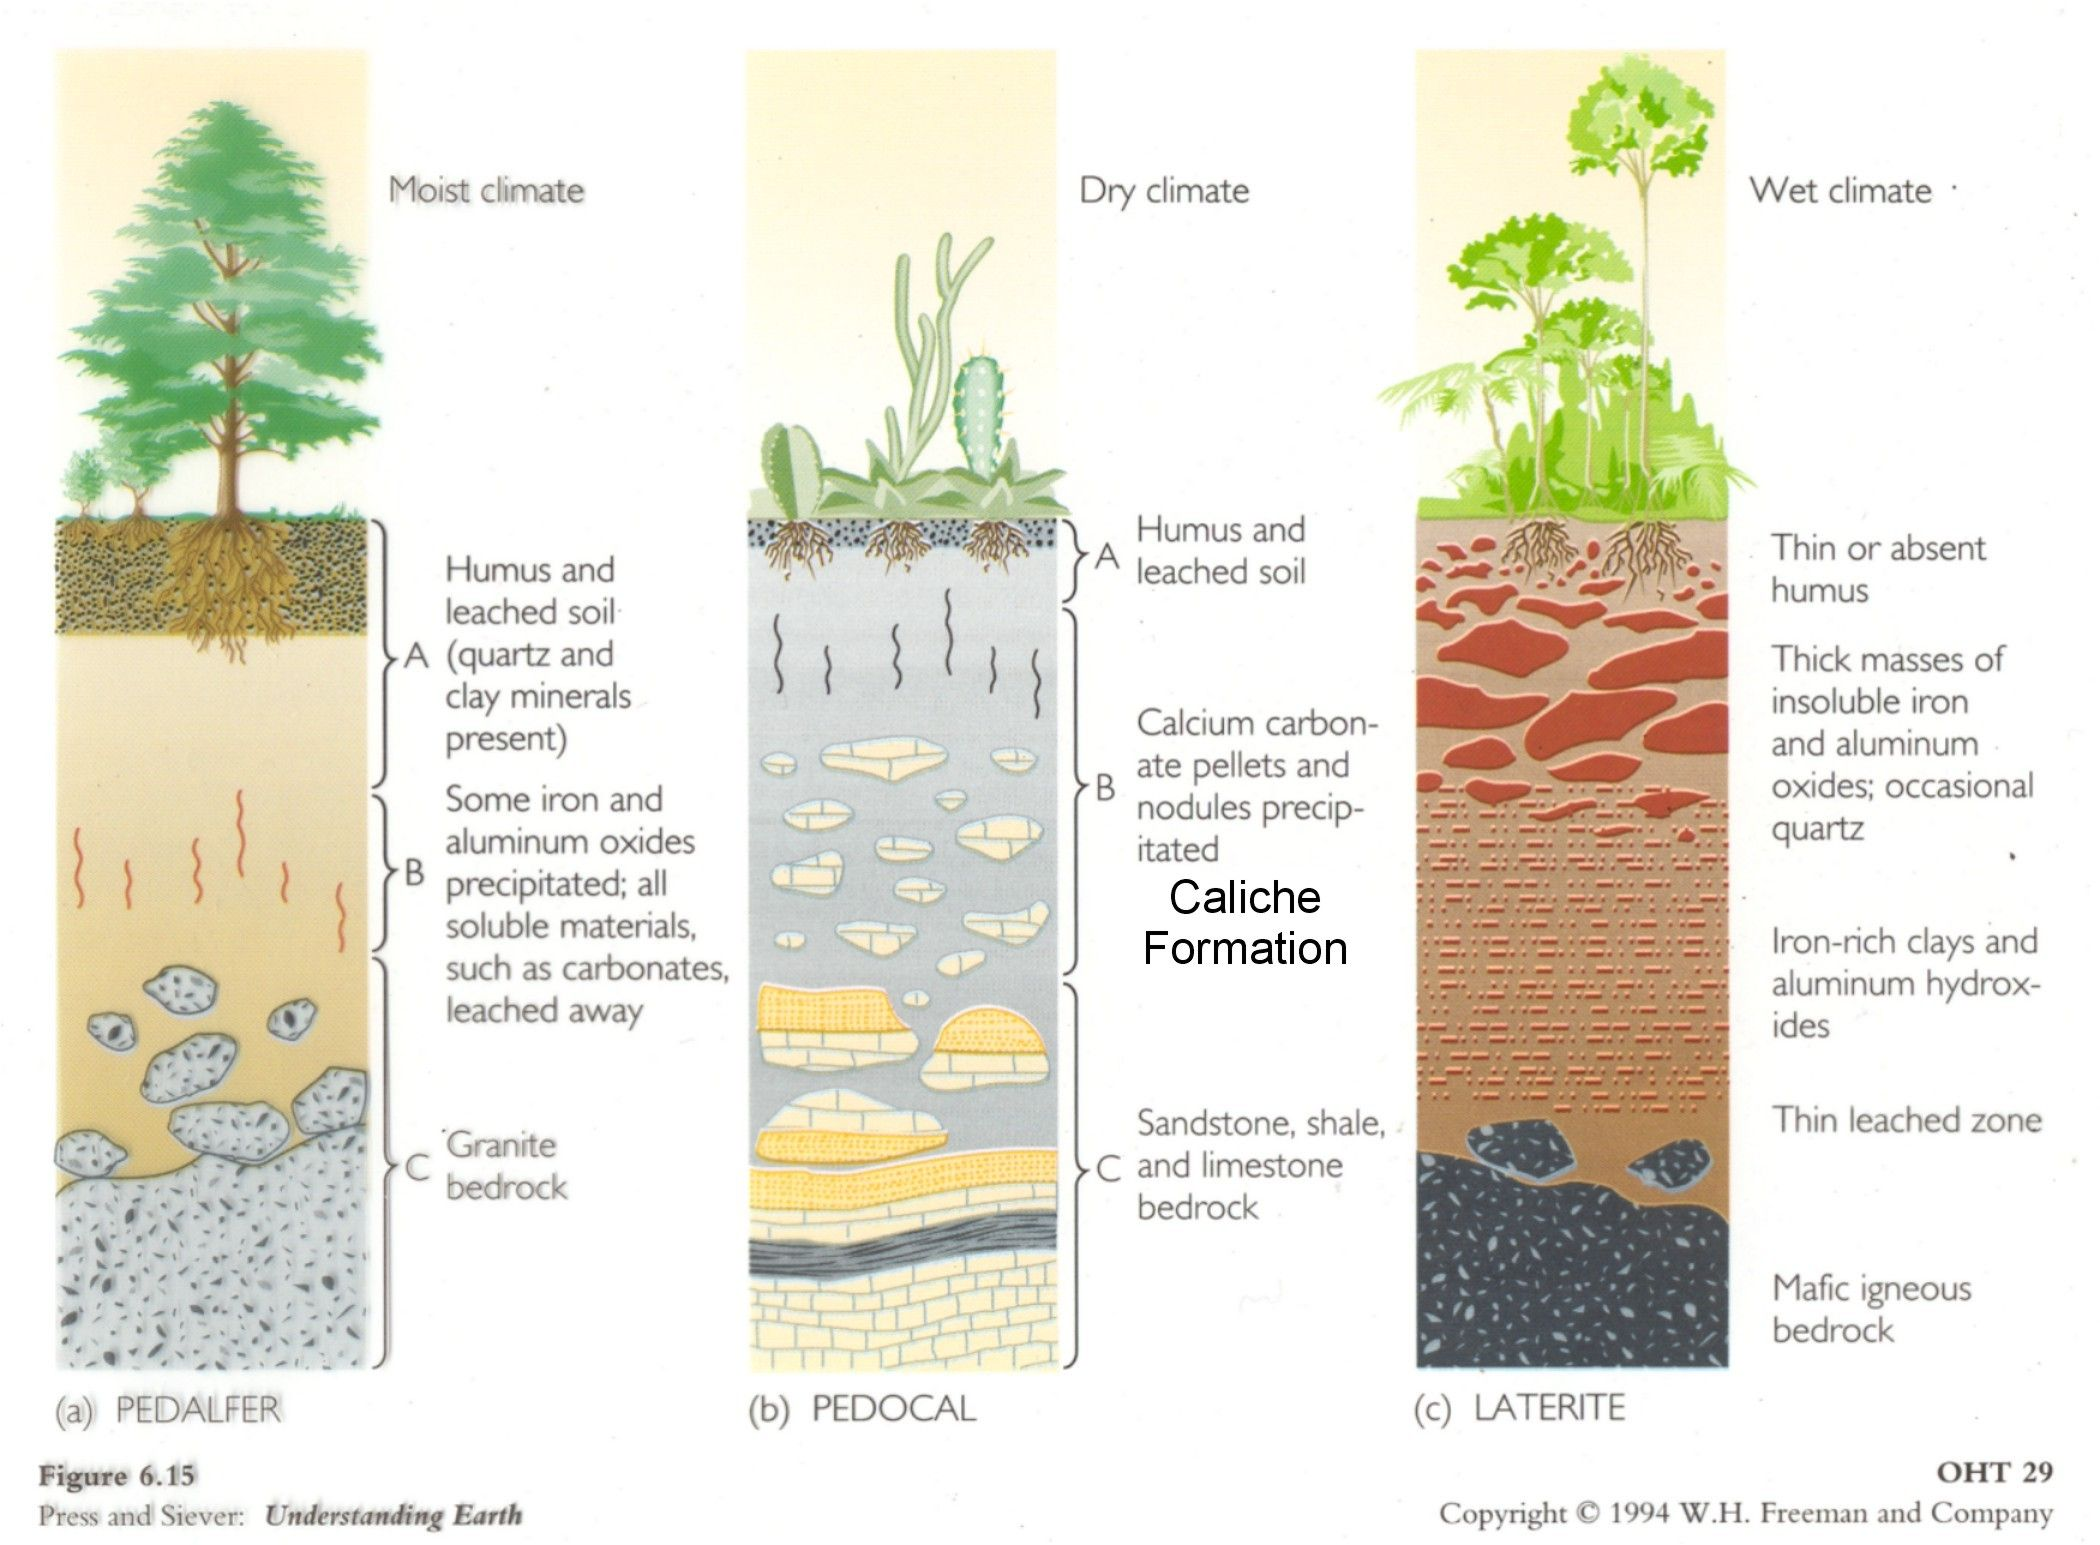 Soil types in various biomes garden coachs blog for gardeners soil types in various biomes garden coachs blog for gardeners giving soil the respect it deserves weather underground pinterest soil type ccuart Image collections